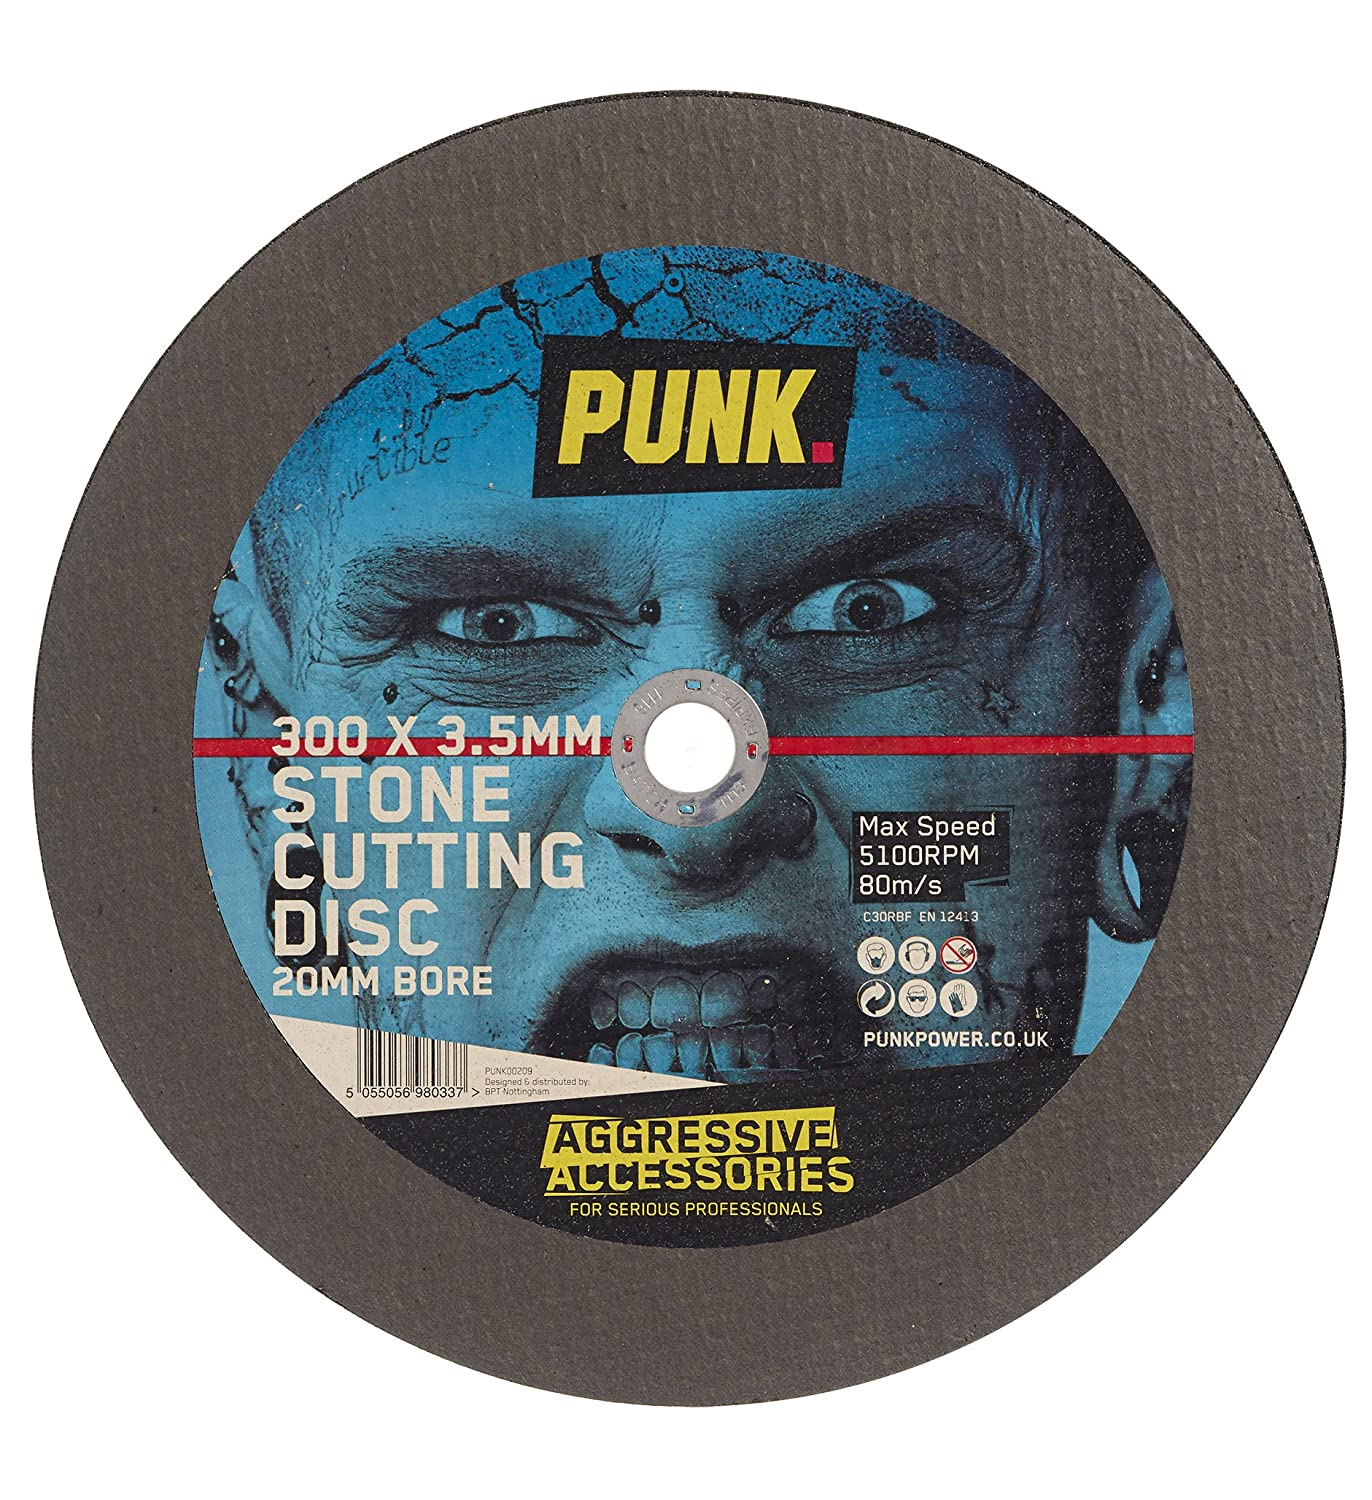 PUNK PUNK00209 300mm Stone Cutting Disc with 20mm Bore BPT